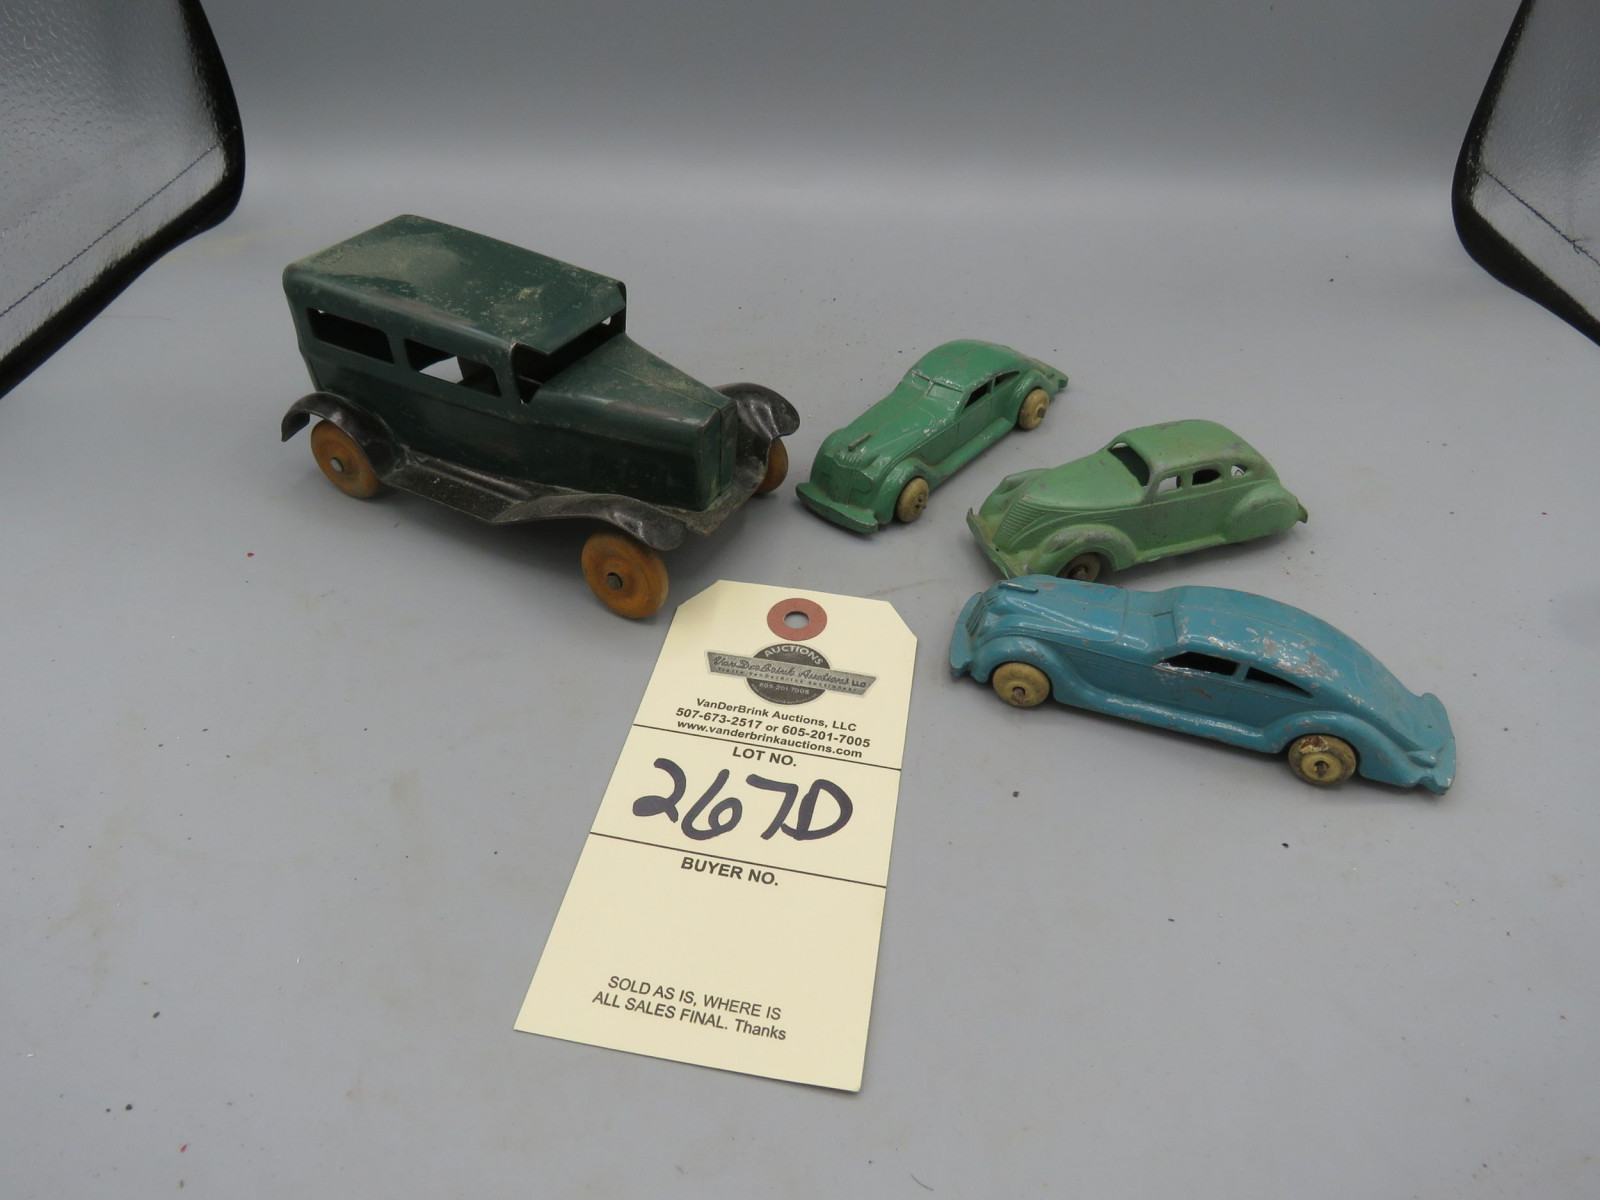 Vintage Car Toy Grouping - Image 1